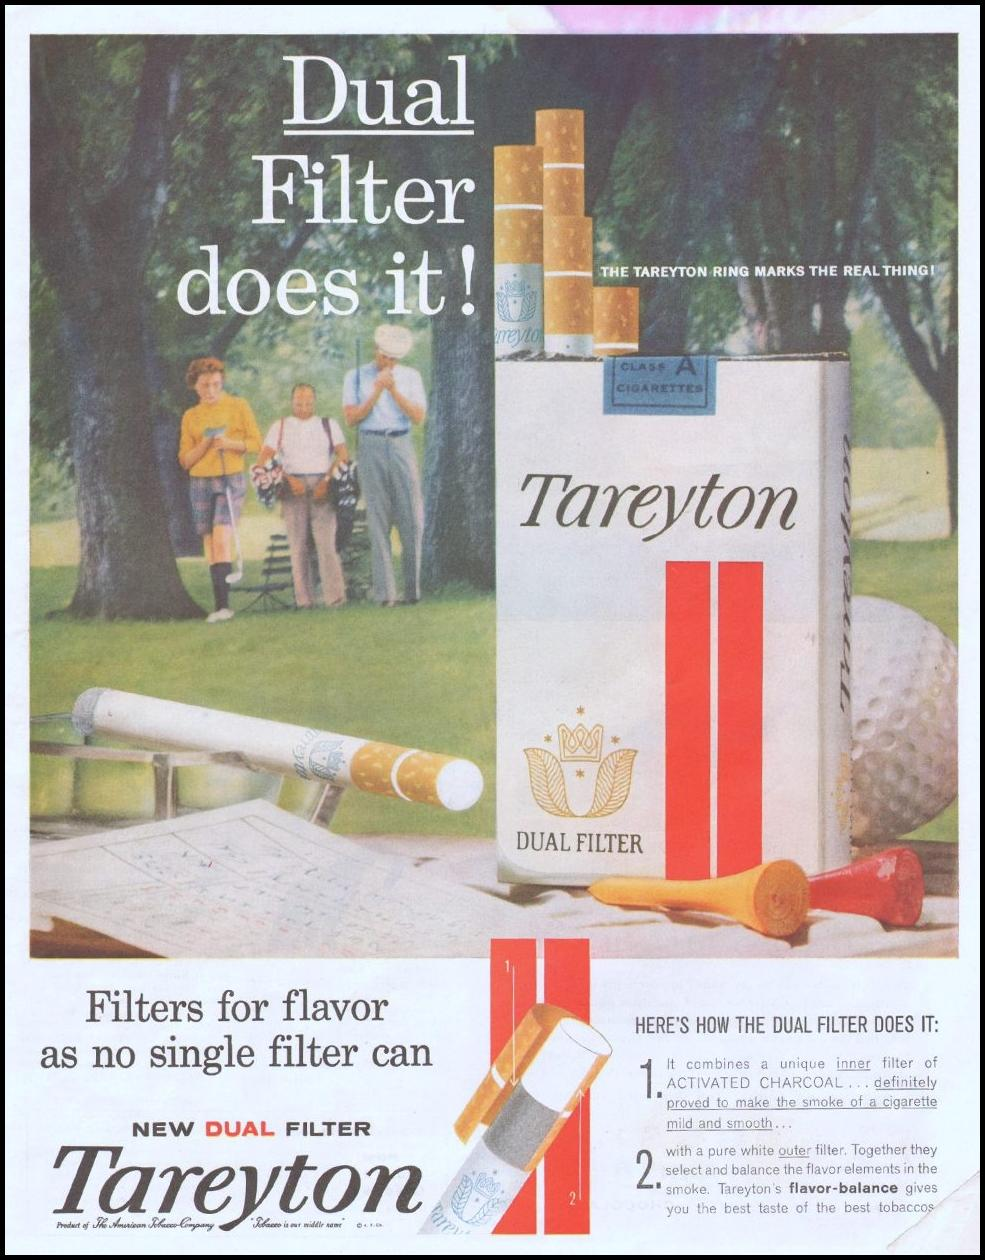 TAREYTON CIGARETTES SATURDAY EVENING POST 06/04/1960 p. 5